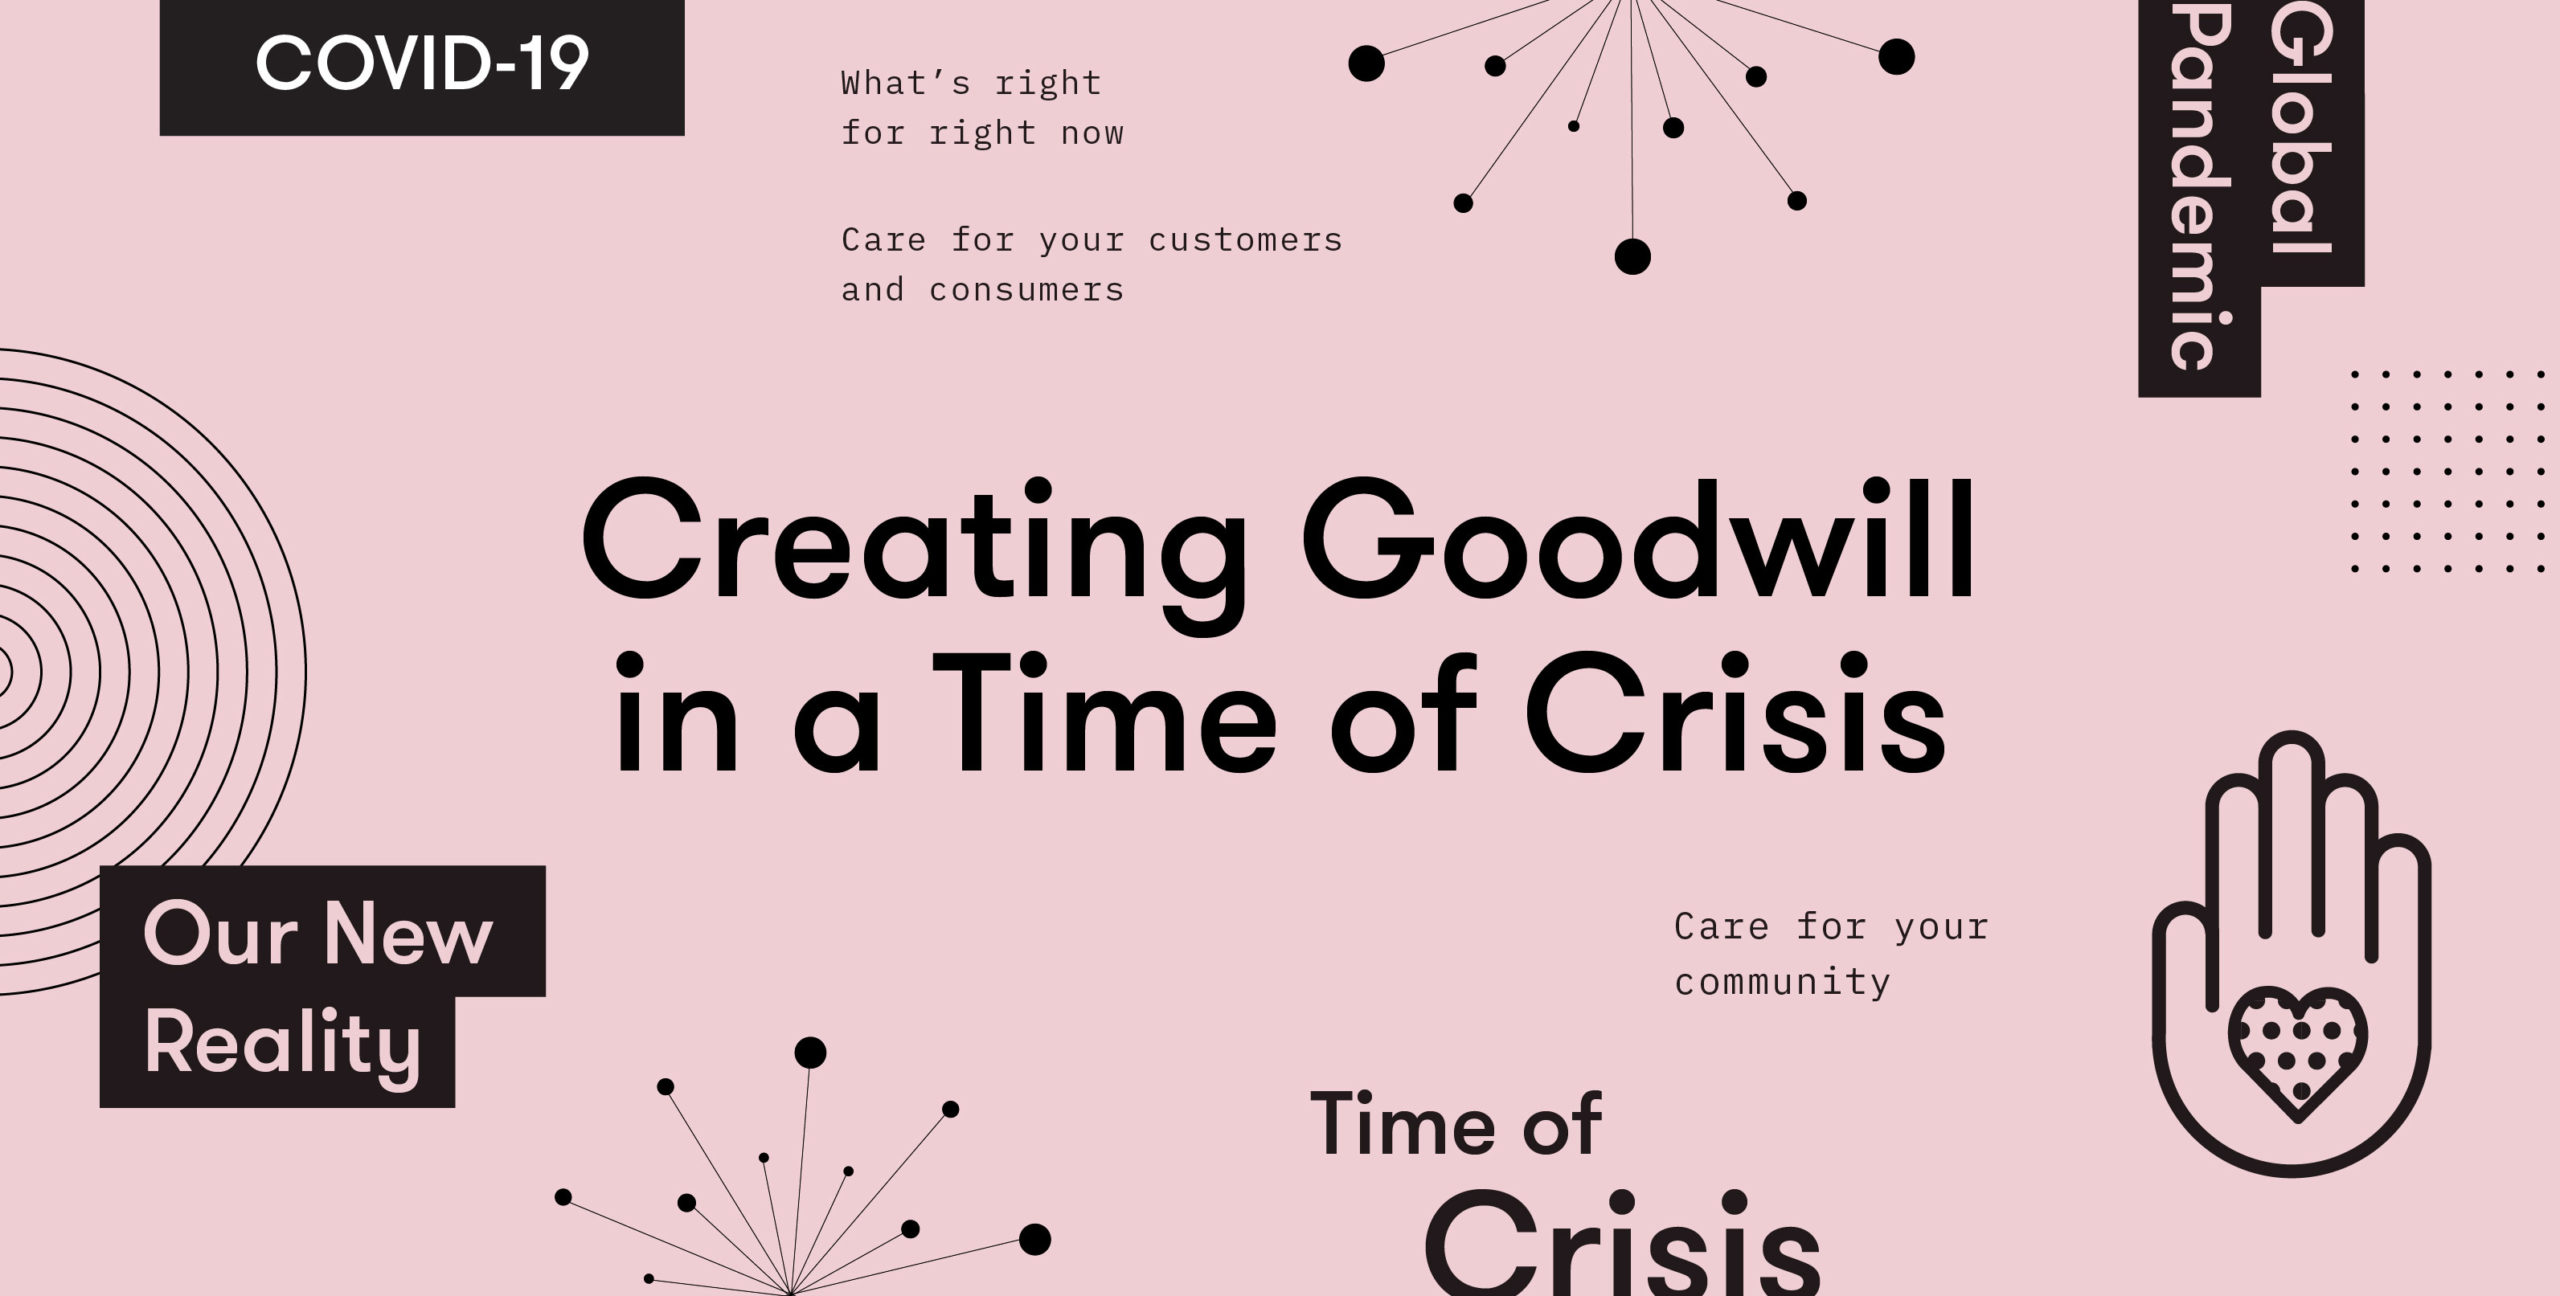 Creating goodwill during crisis: what's right for right now